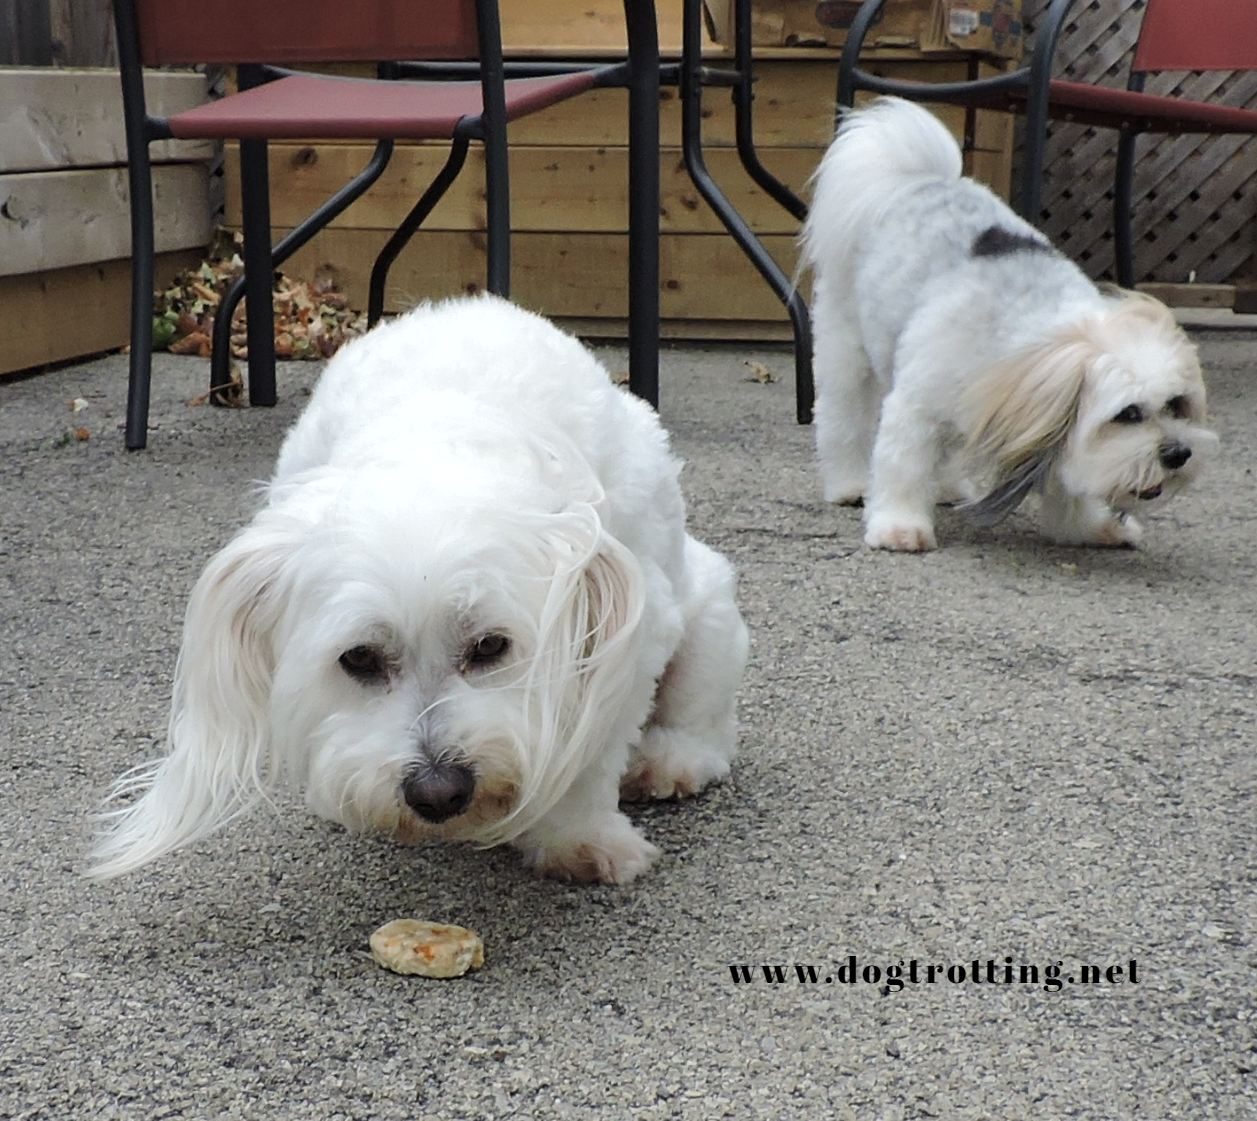 two little white dogs outside eating dog treats